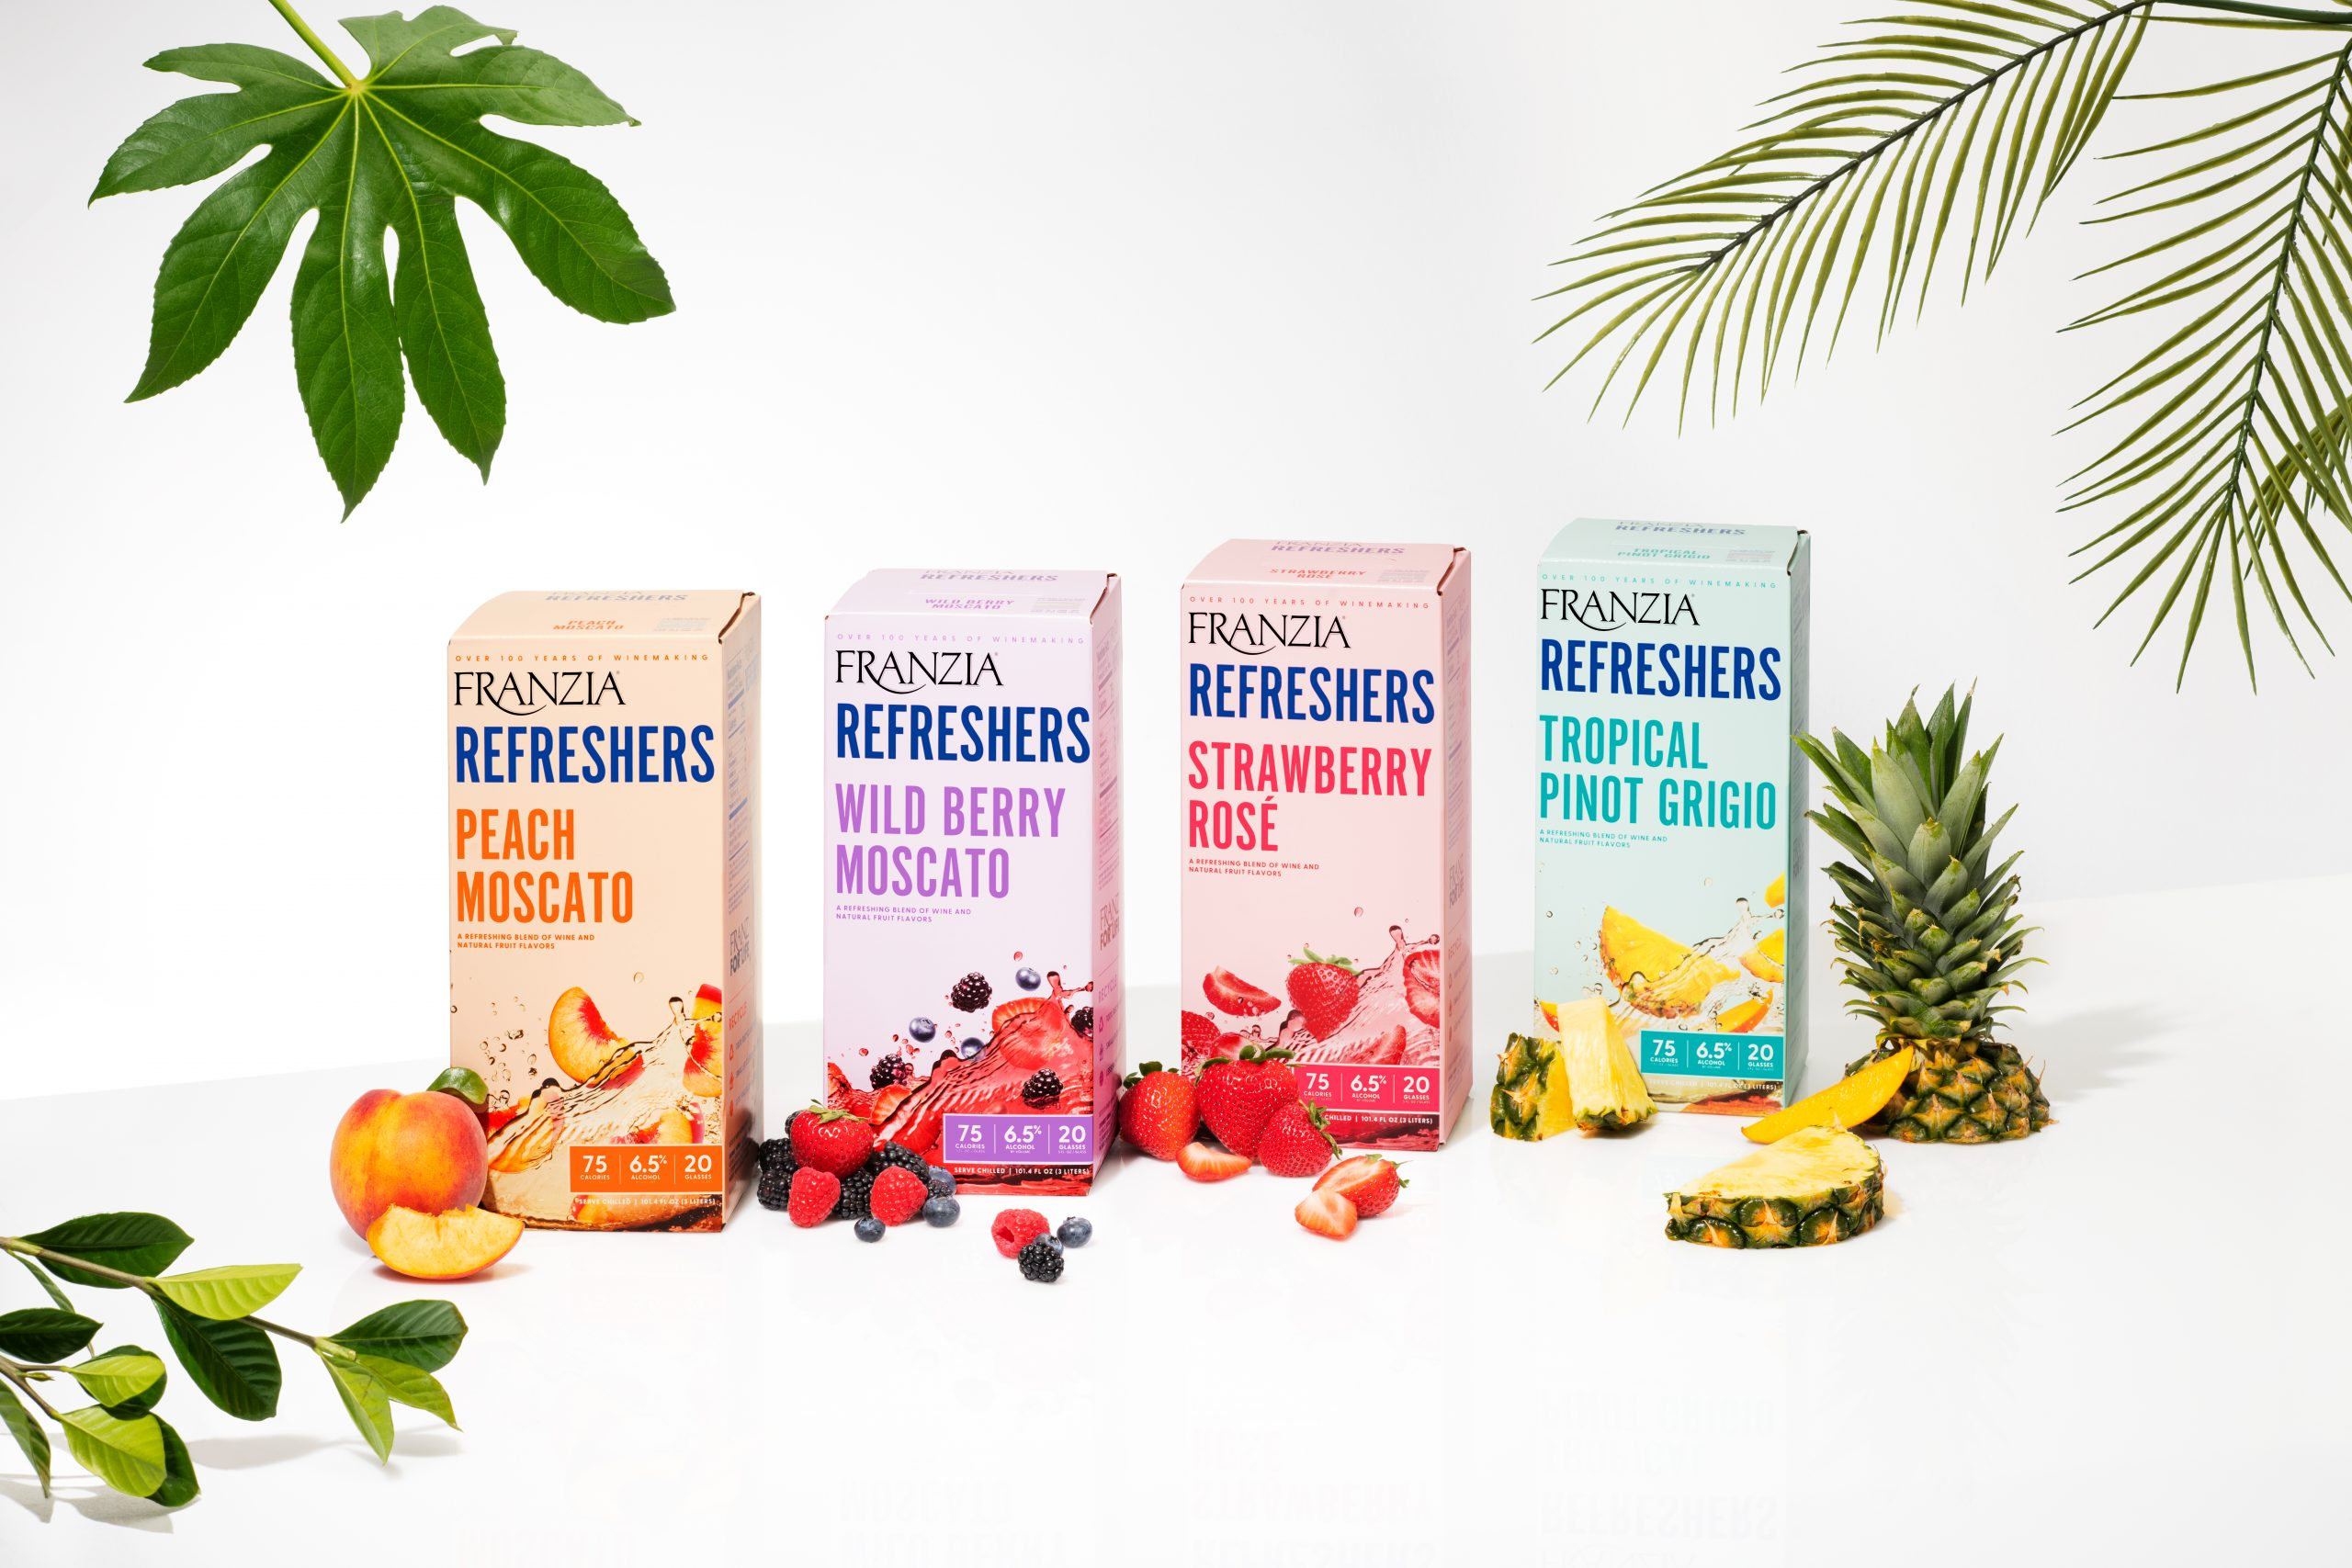 Introducing Franzia Refreshers New Varietal Wines Blended With Natural Fruit Flavors   Business Wire